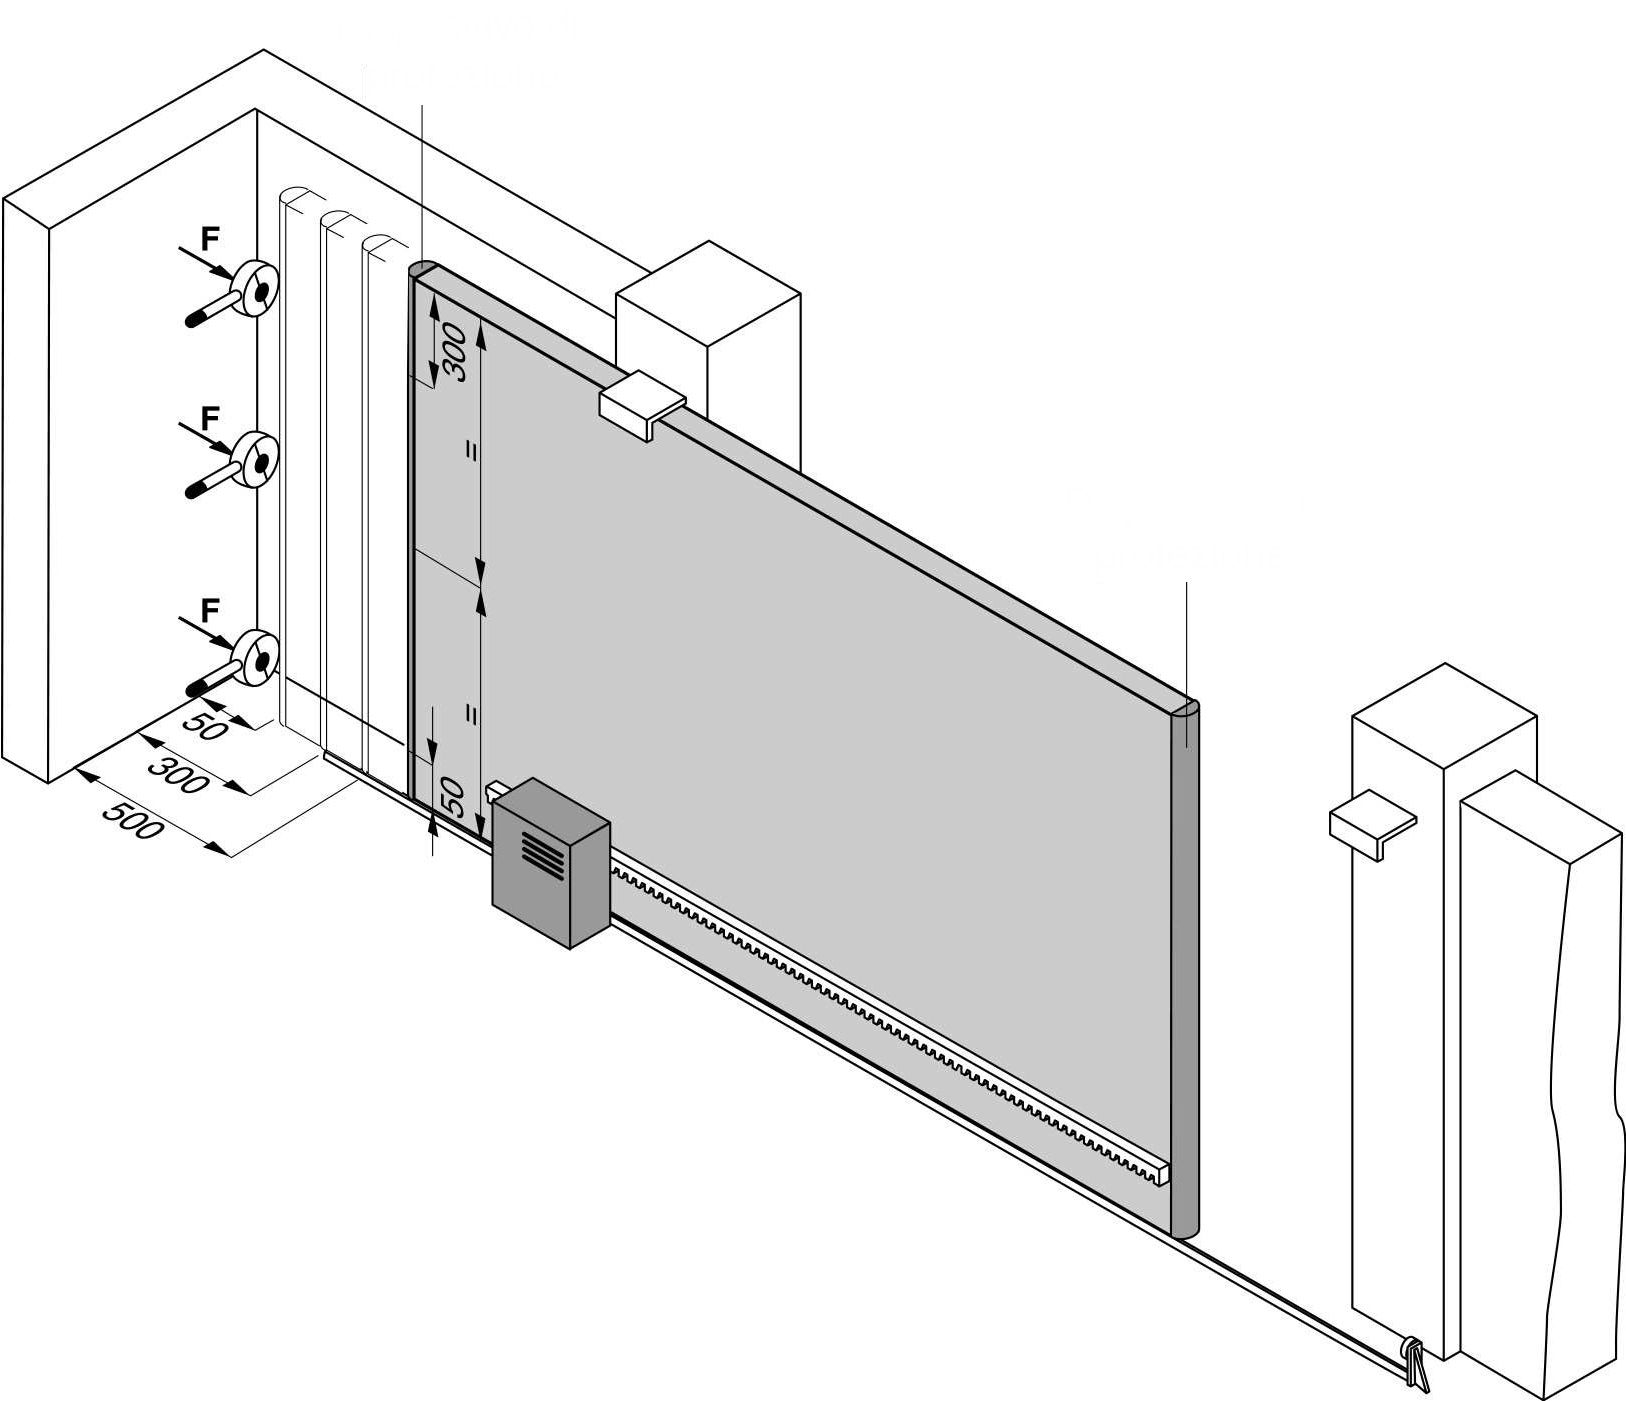 Test points on a sliding gate